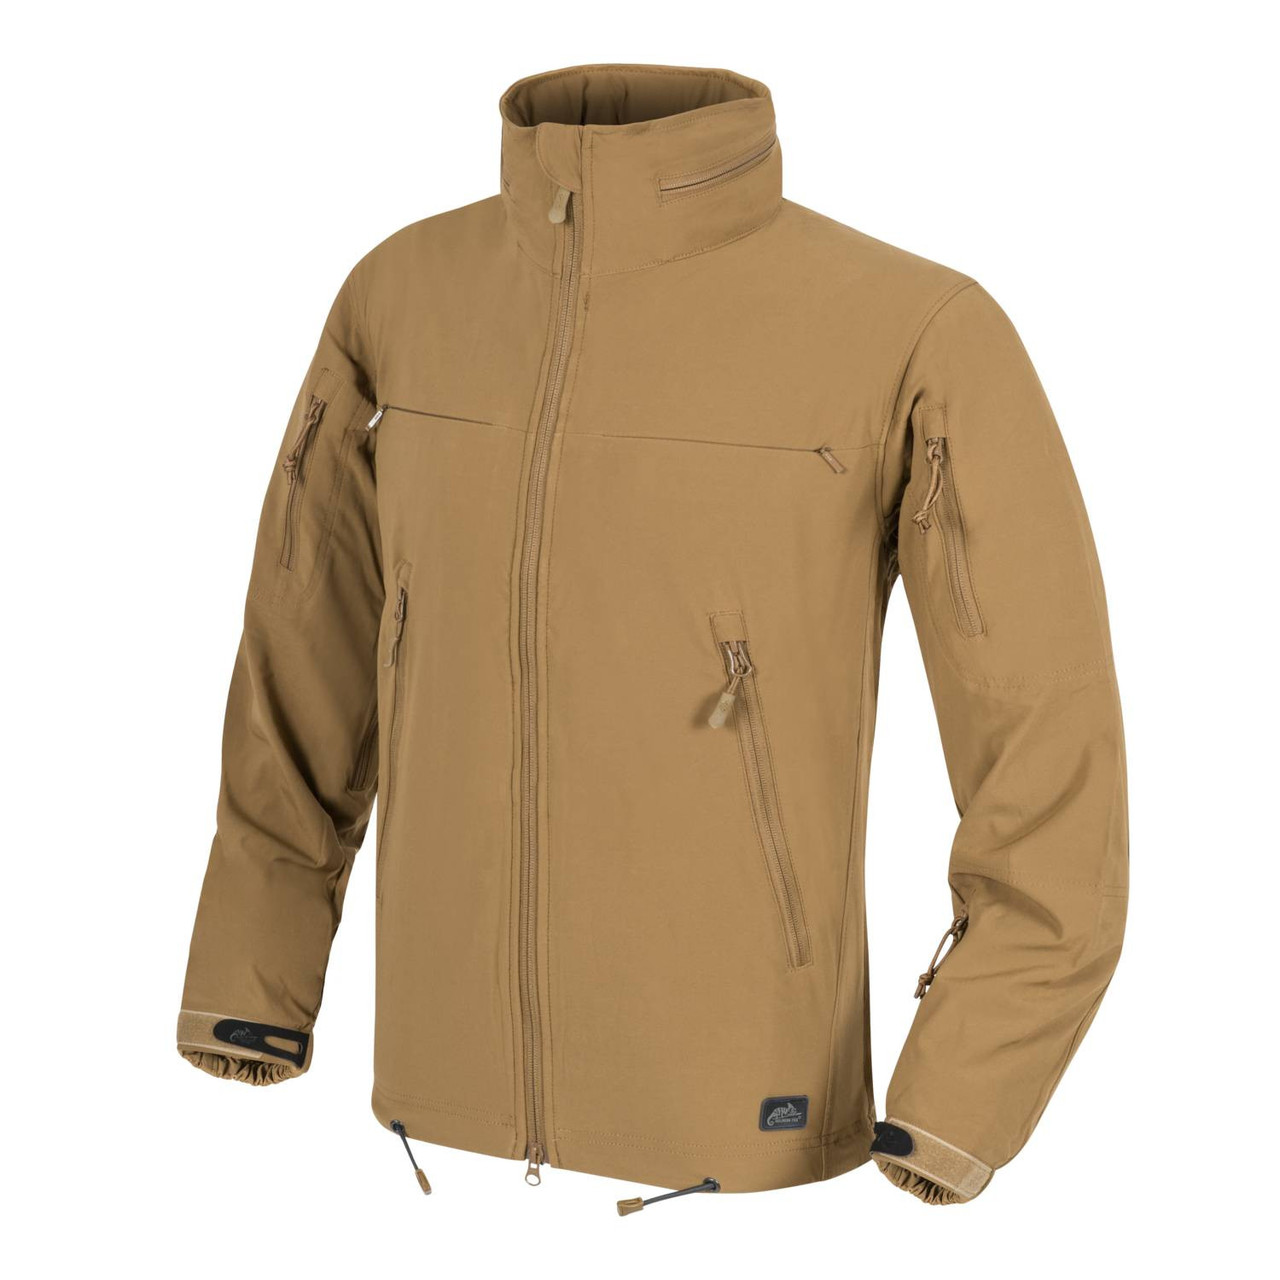 Куртка Cougar QSA™ + HID™ - Soft Shell Windblocker, Helikon - Tex. Новий товар. L, Coyote